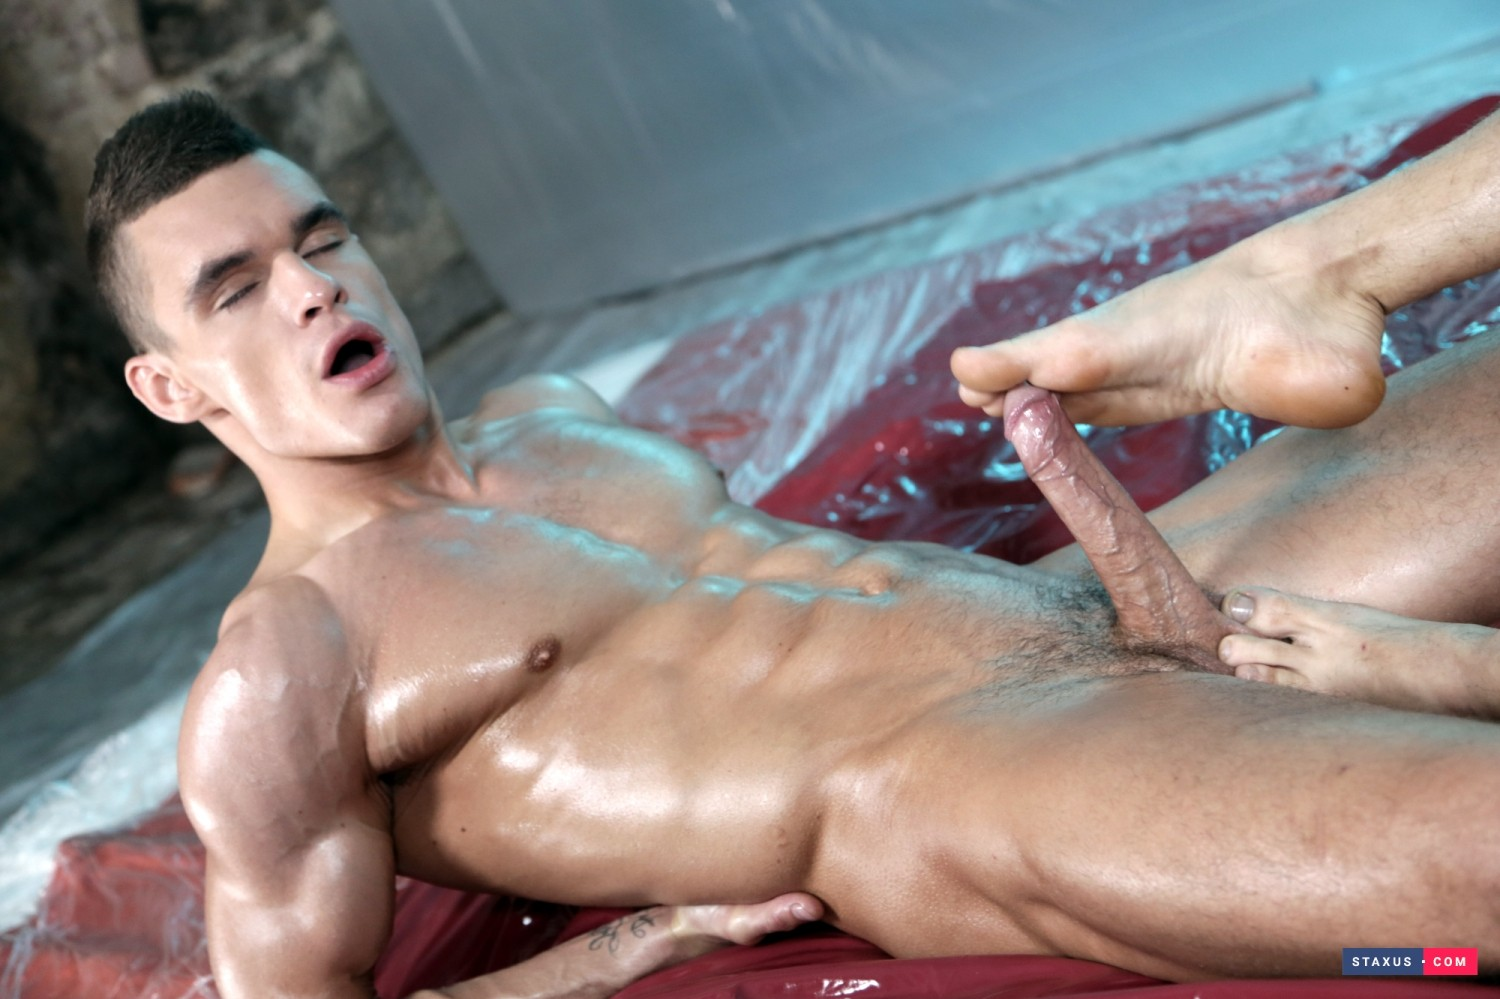 Oil Up Scene 2 From Staxus